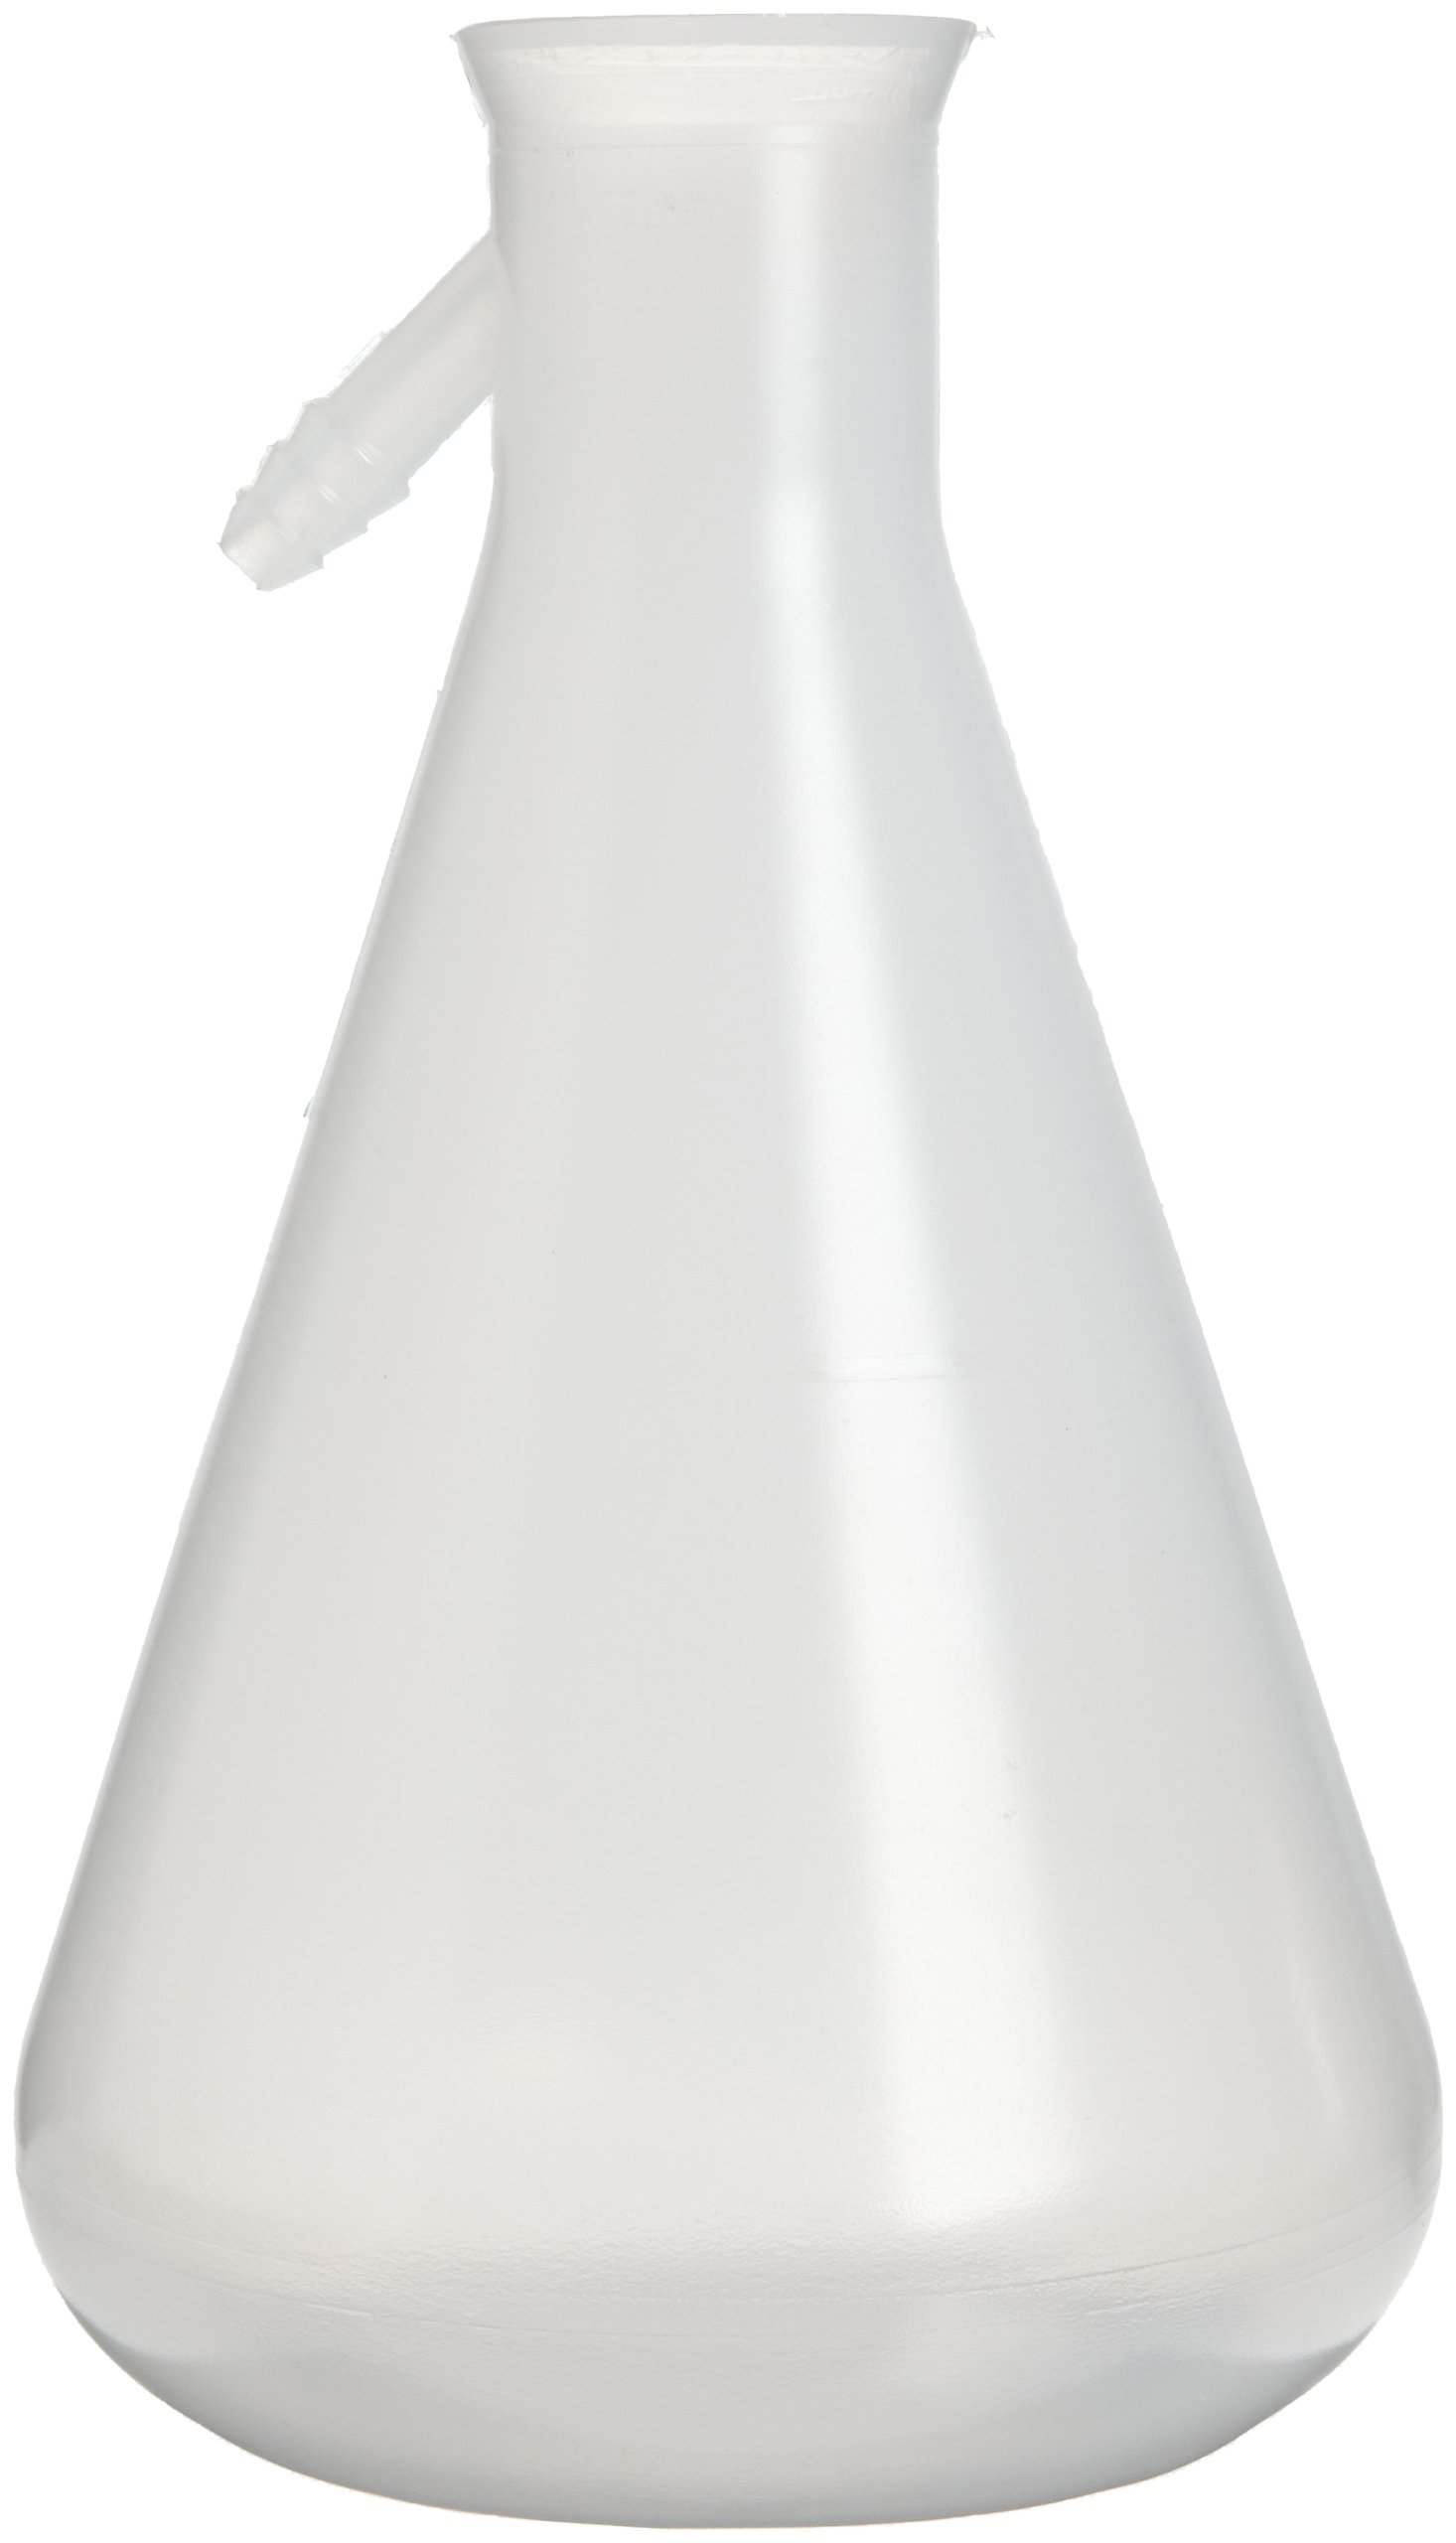 Bel-Art Polypropylene 1000ml Filtering Flask with Side Arm (H38941-0000) by SP Scienceware